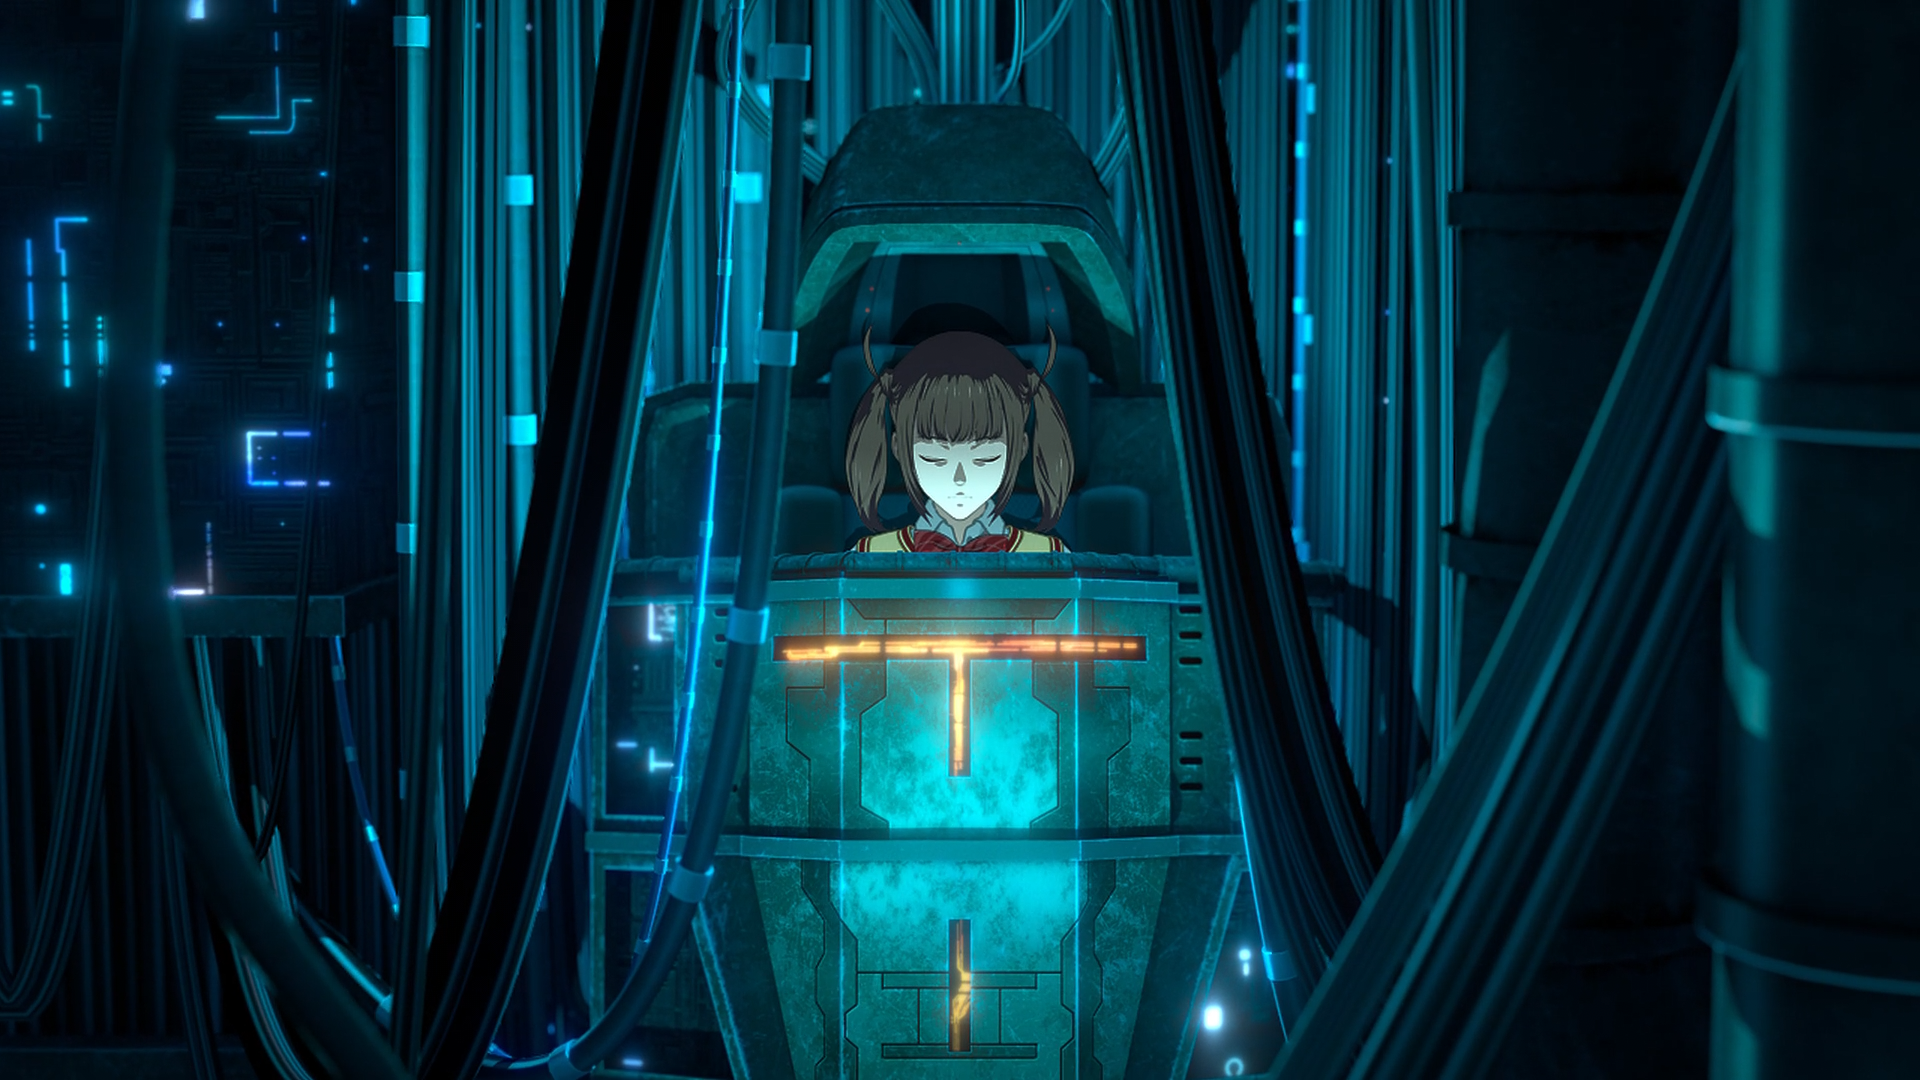 SubsPlease_Night_Head_2041_-_10_1080p_0DDB7089-00h20m55s923t.png